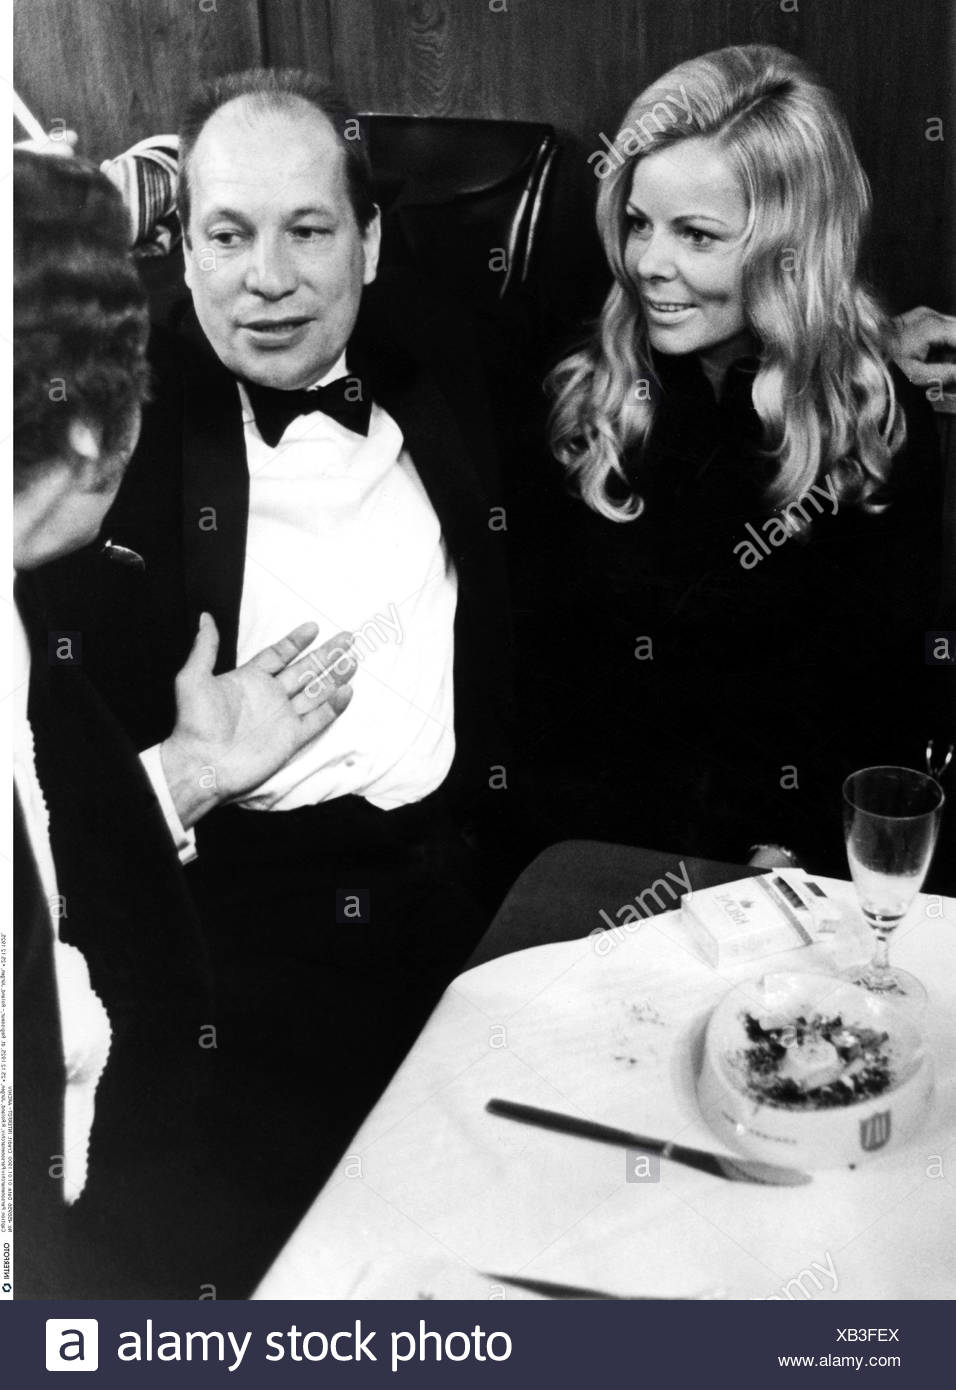 Roland, Juergen, 25.12.1925 - 21.9.2007, German director, half length, with his wife, Hofbraeuhaus, Munich, 1972, 1970s, - Stock Image